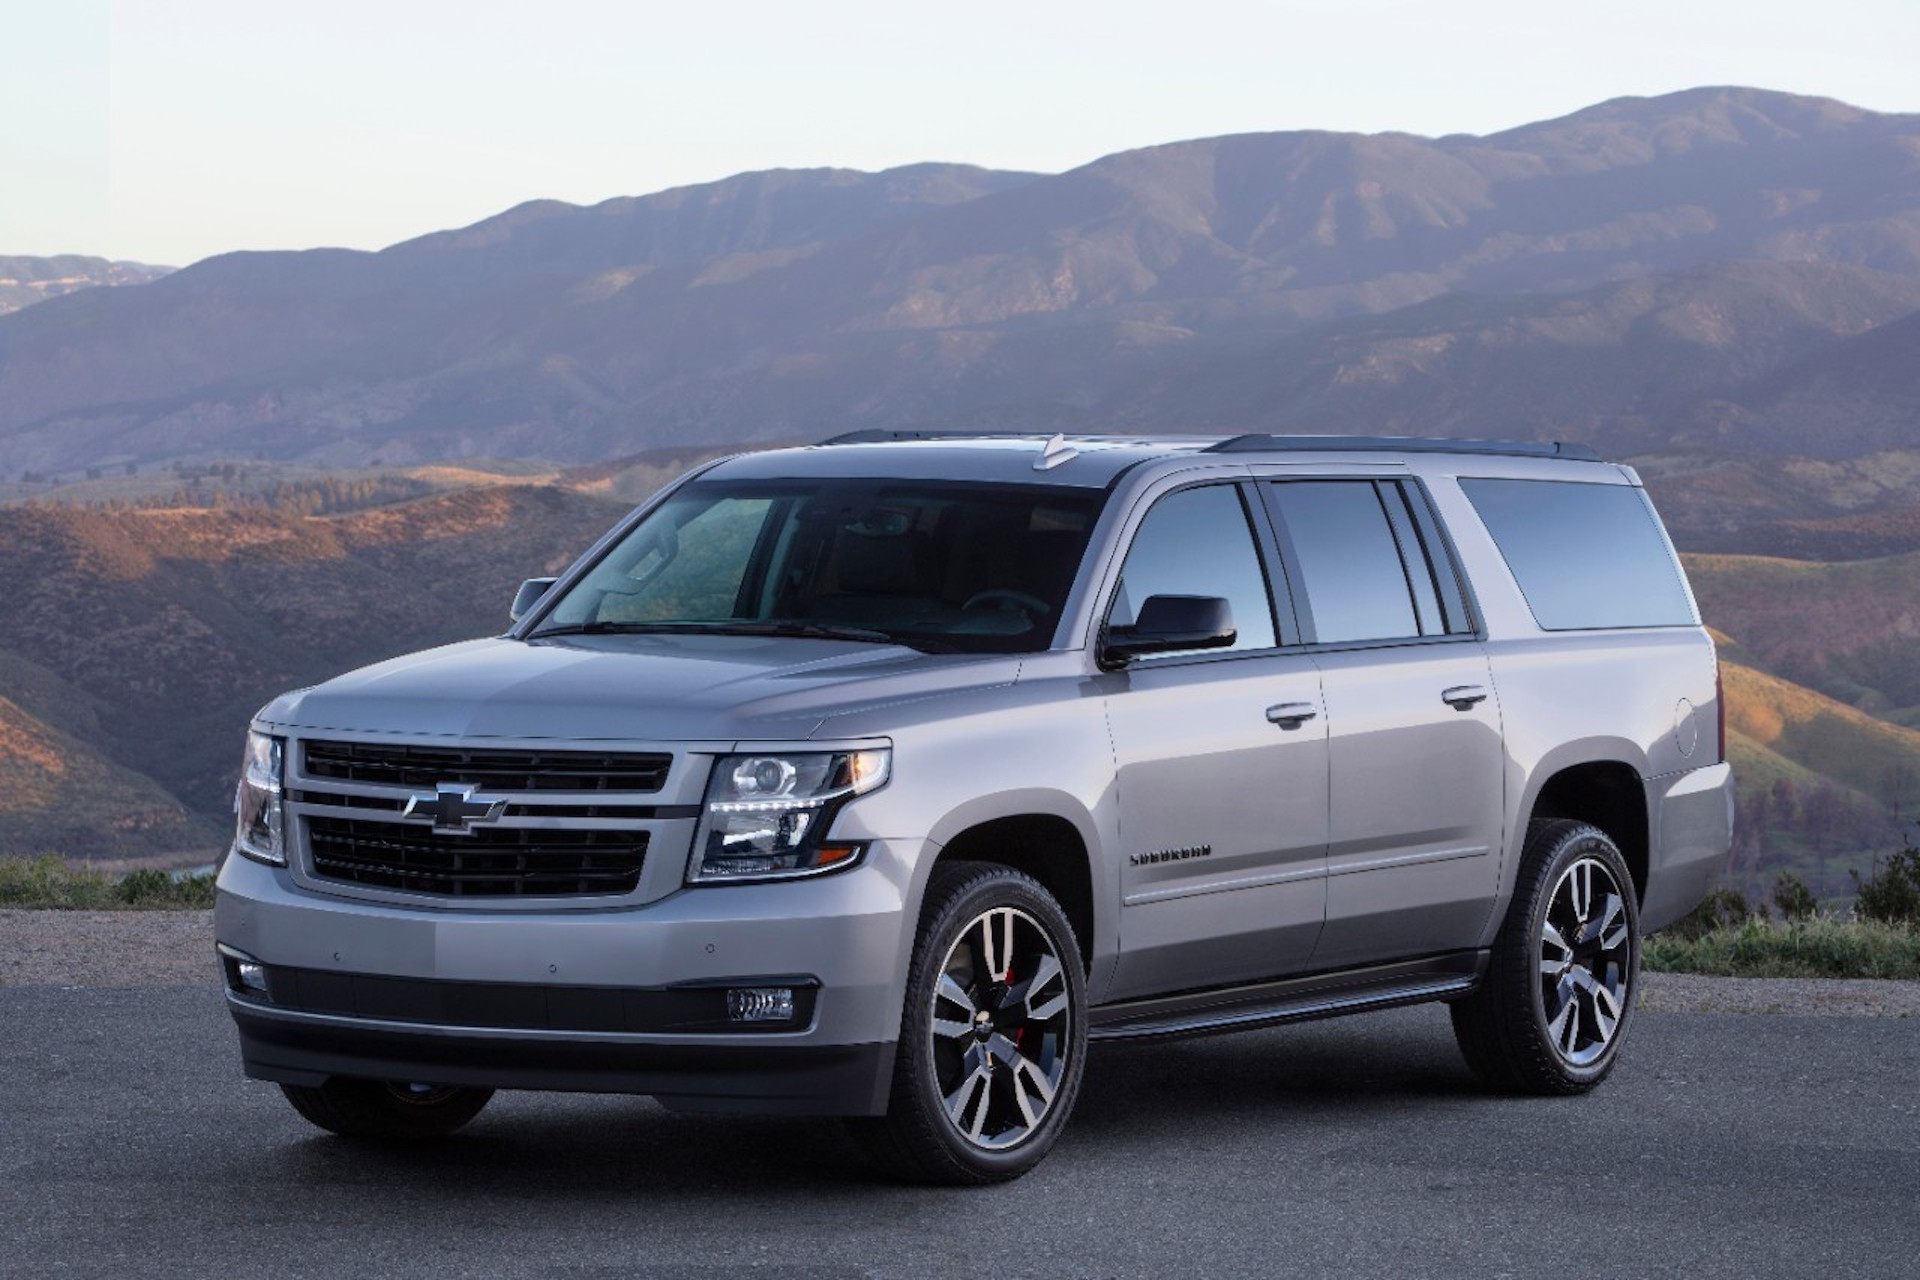 2019 Chevrolet Suburban Rst To Offer 420 Hp 6 2 Liter V 8